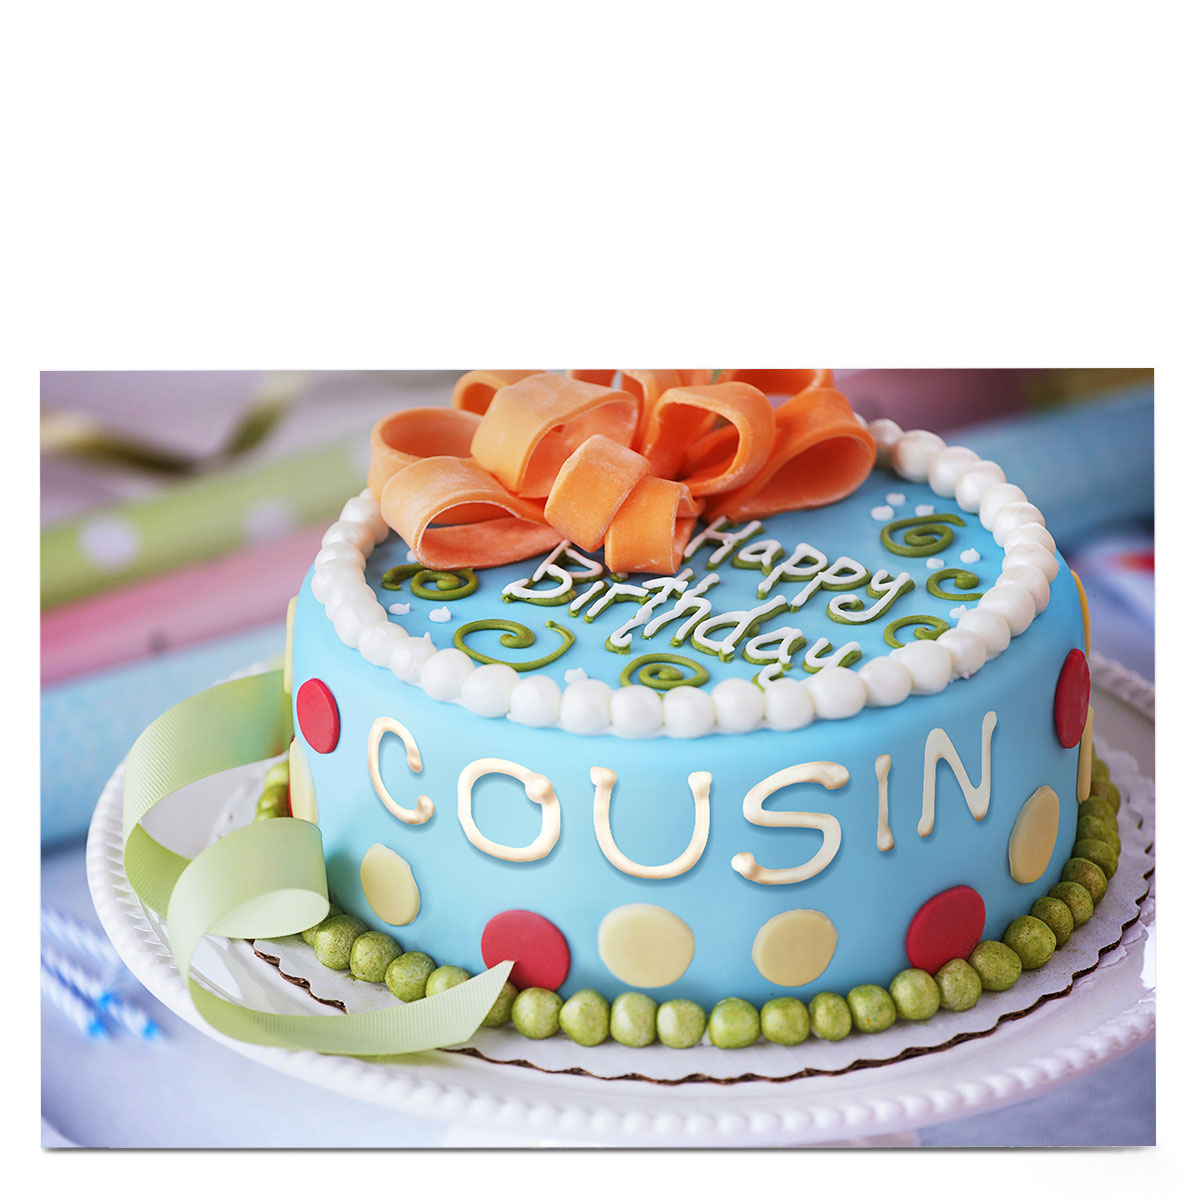 Personalised Birthday Card - Cake Icing [Any Name]